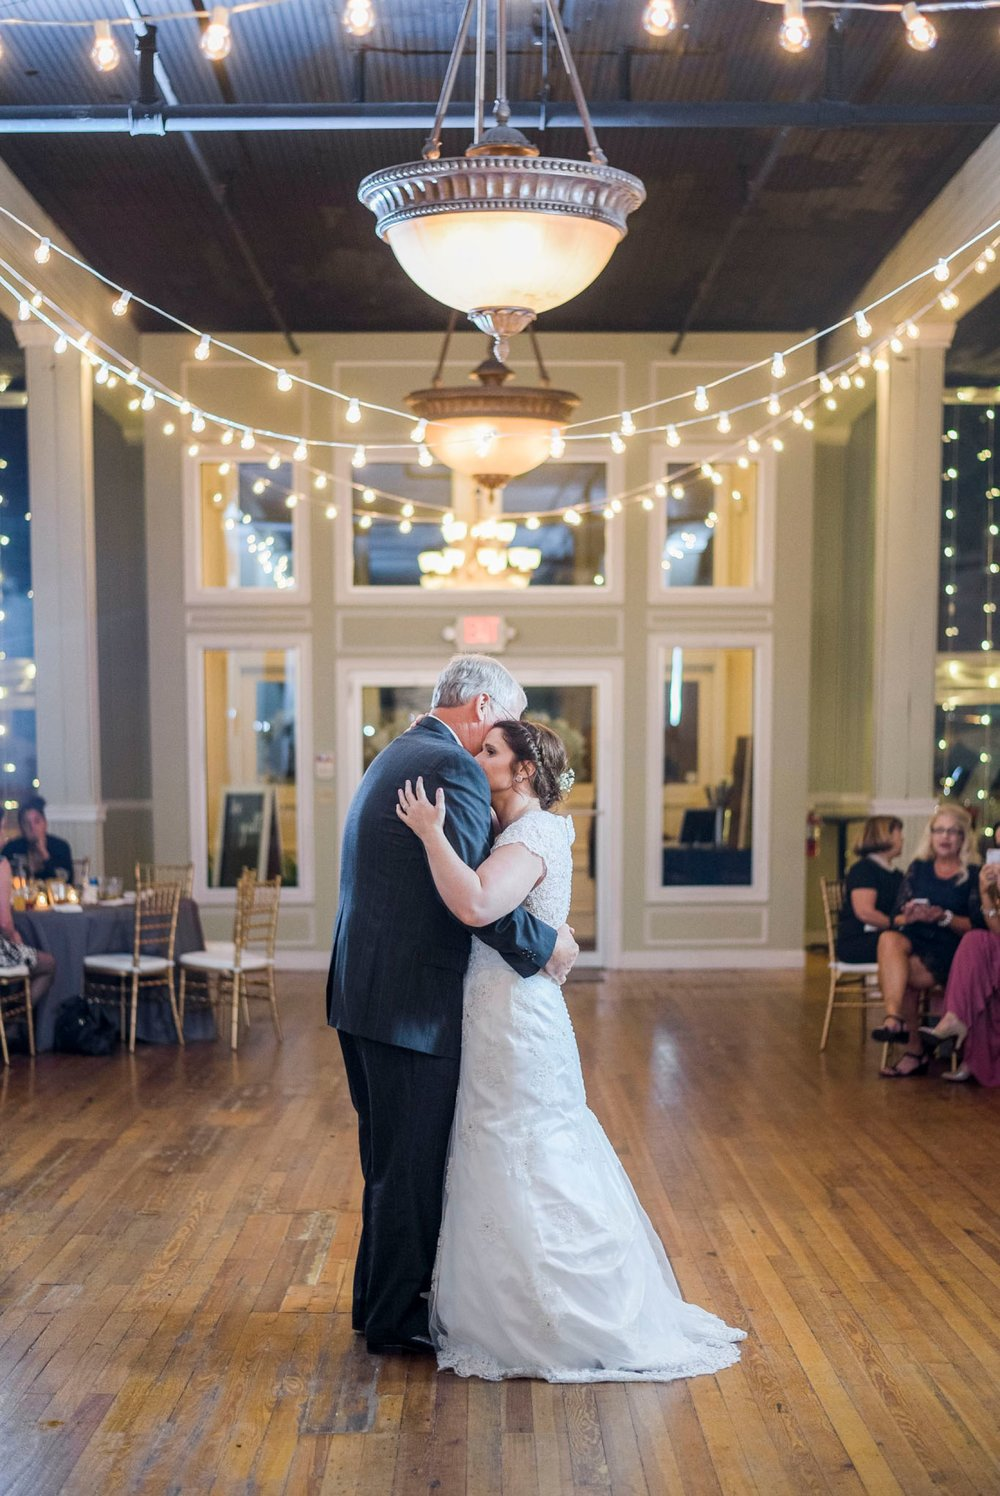 Trescaon8th_DowntownLynchburg_Virginiaweddingphotographer 91.jpg